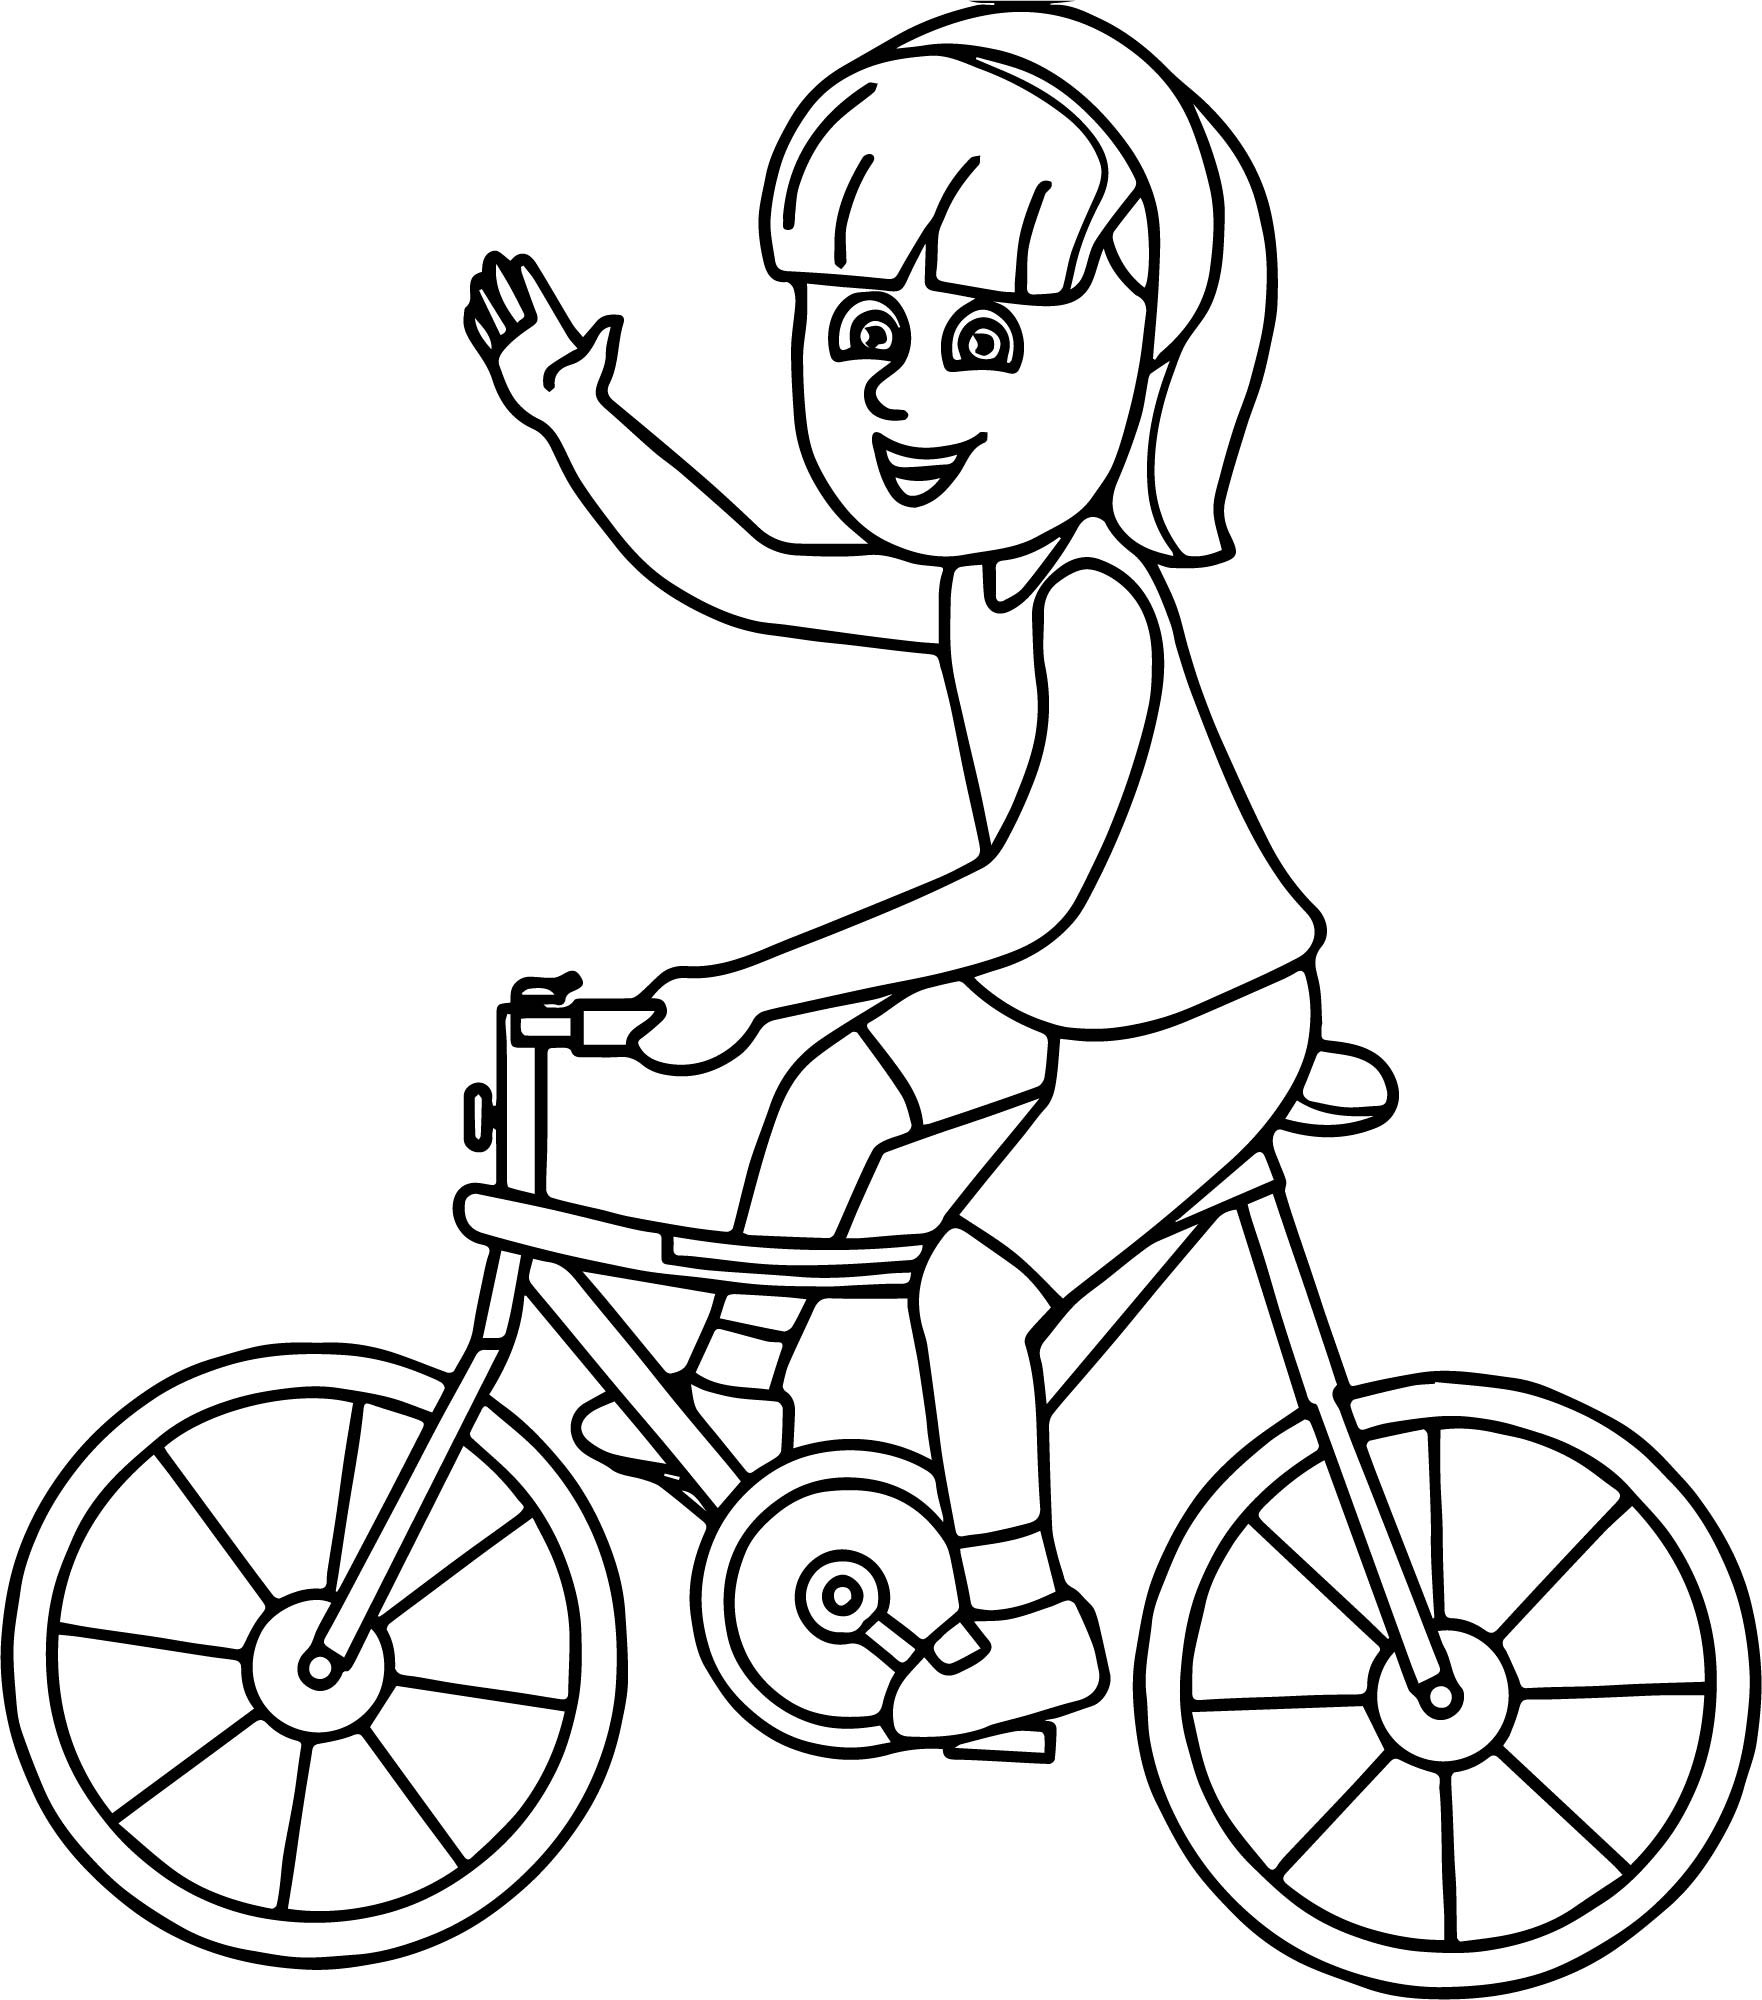 bike coloring page street bike coloring pages at getdrawings free download bike page coloring